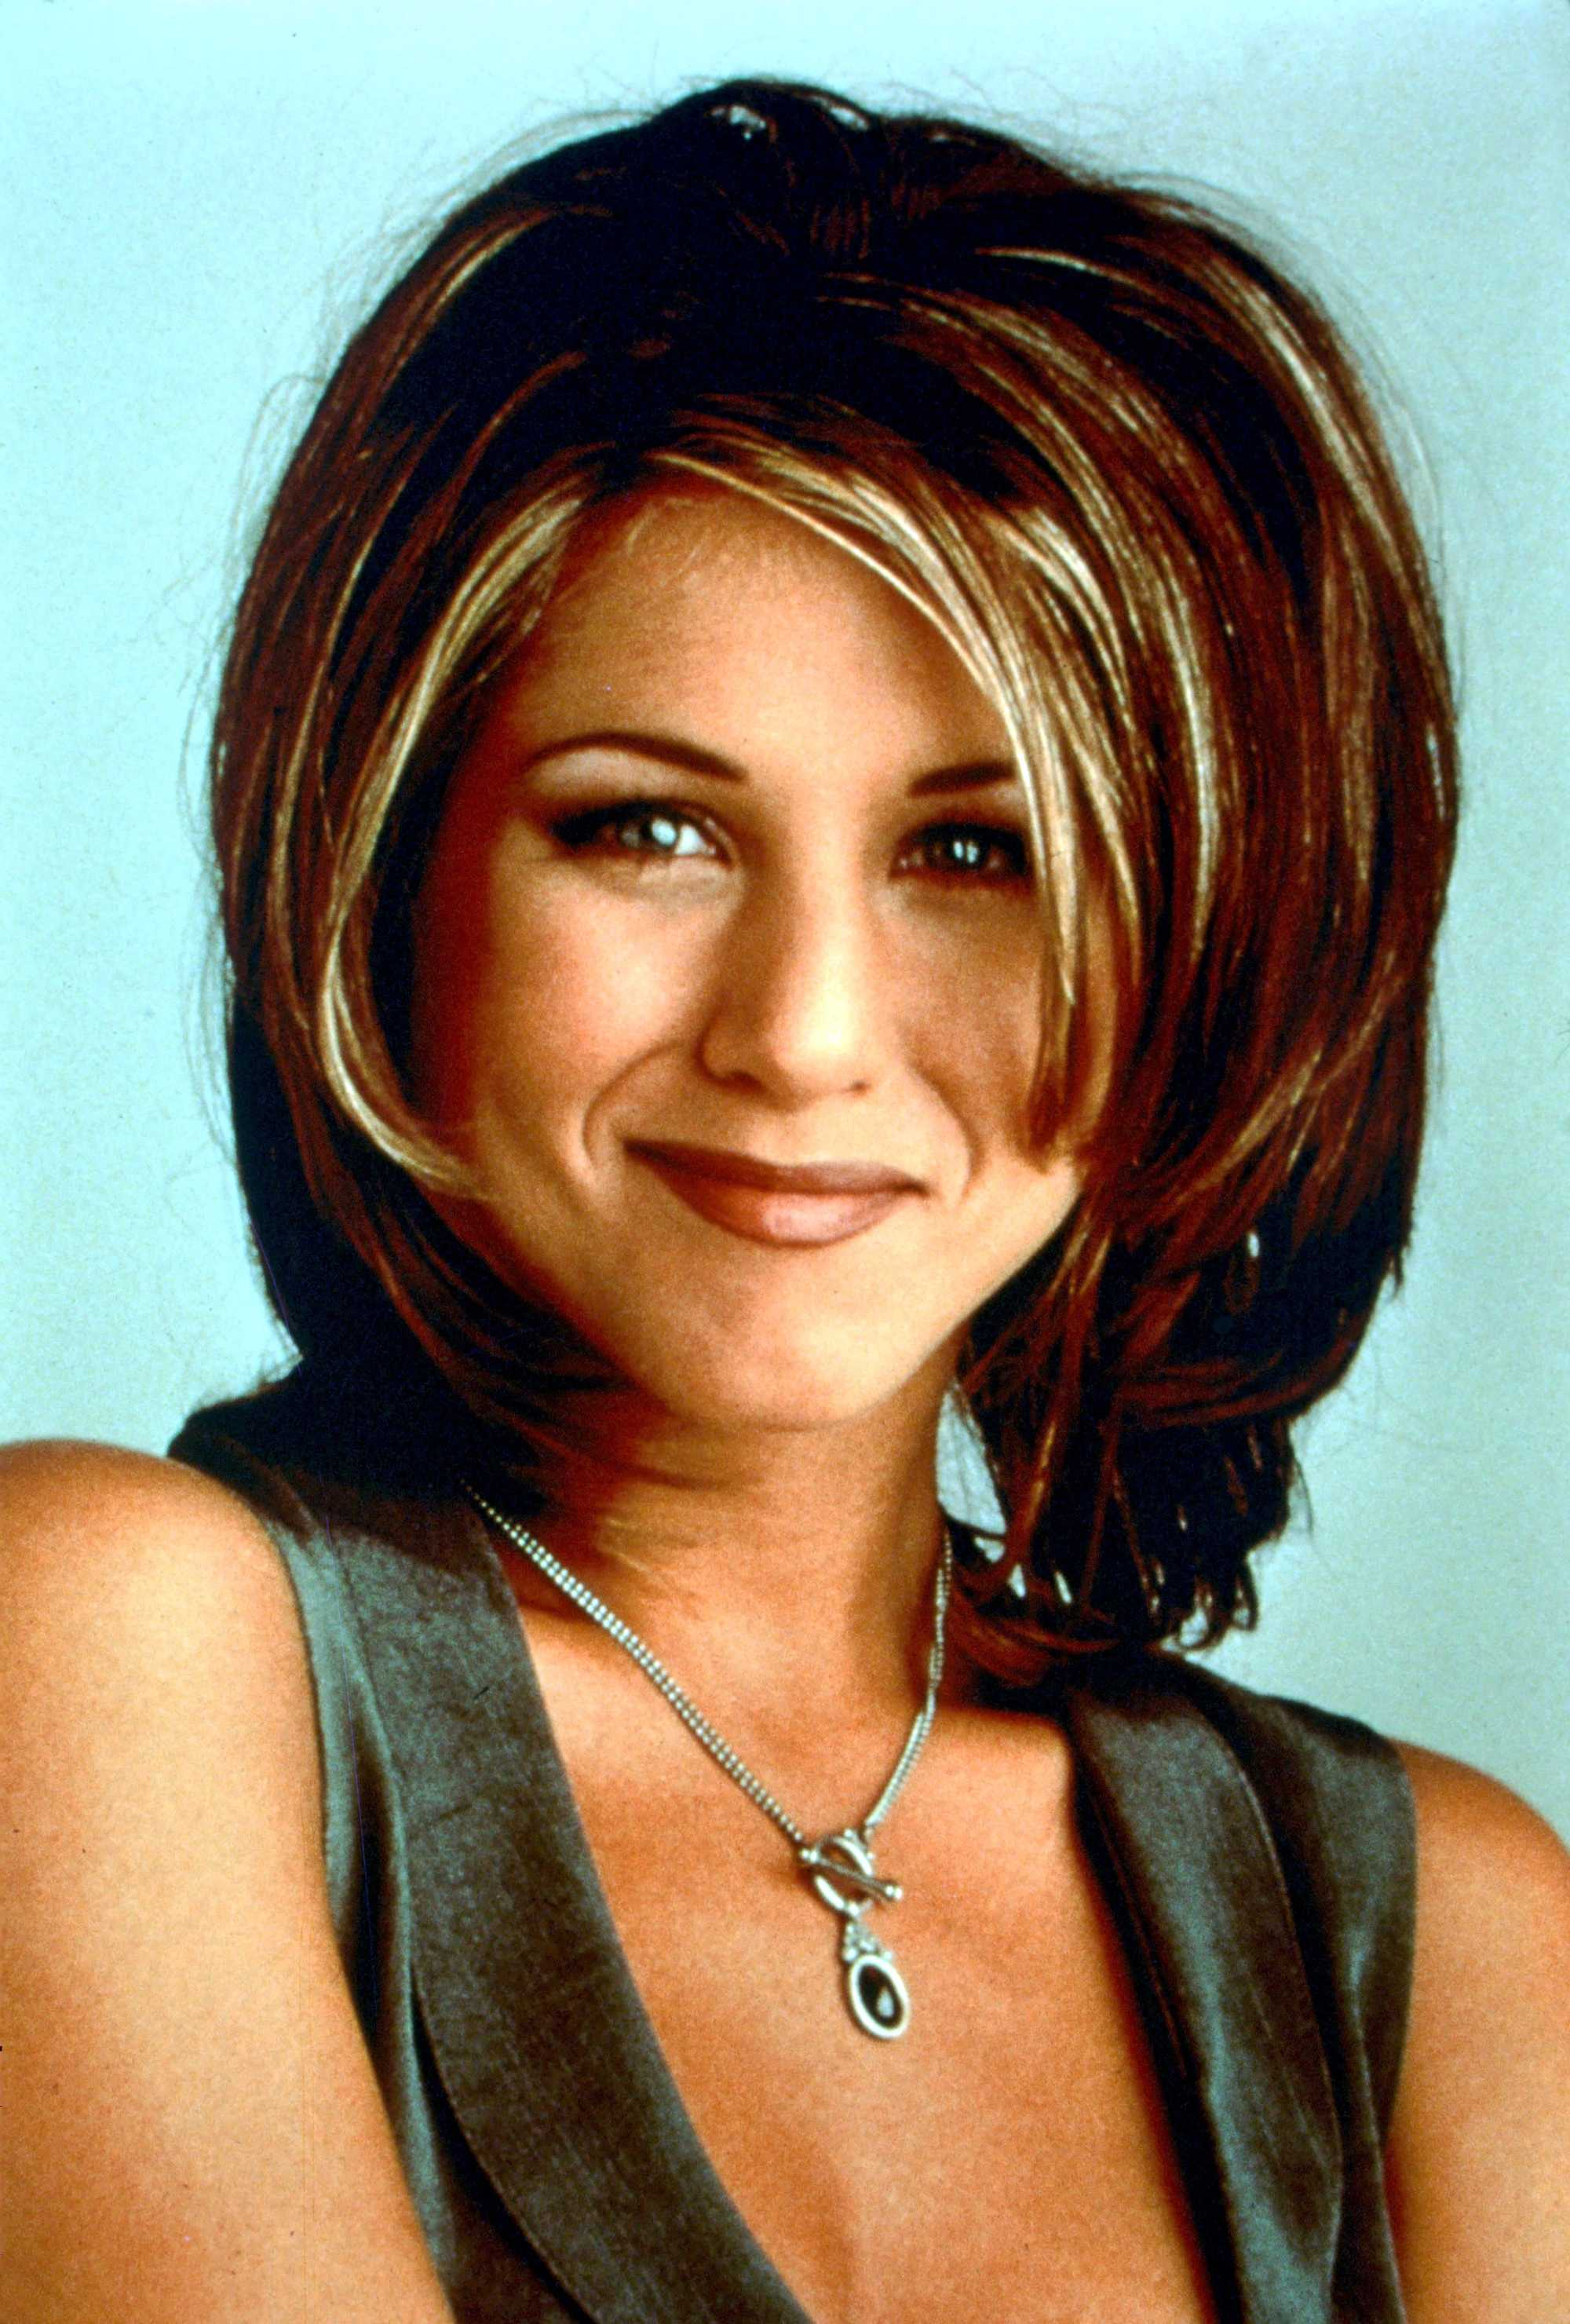 The Rachel Haircut Inspirational Looks That Prove The Hairstyle Is